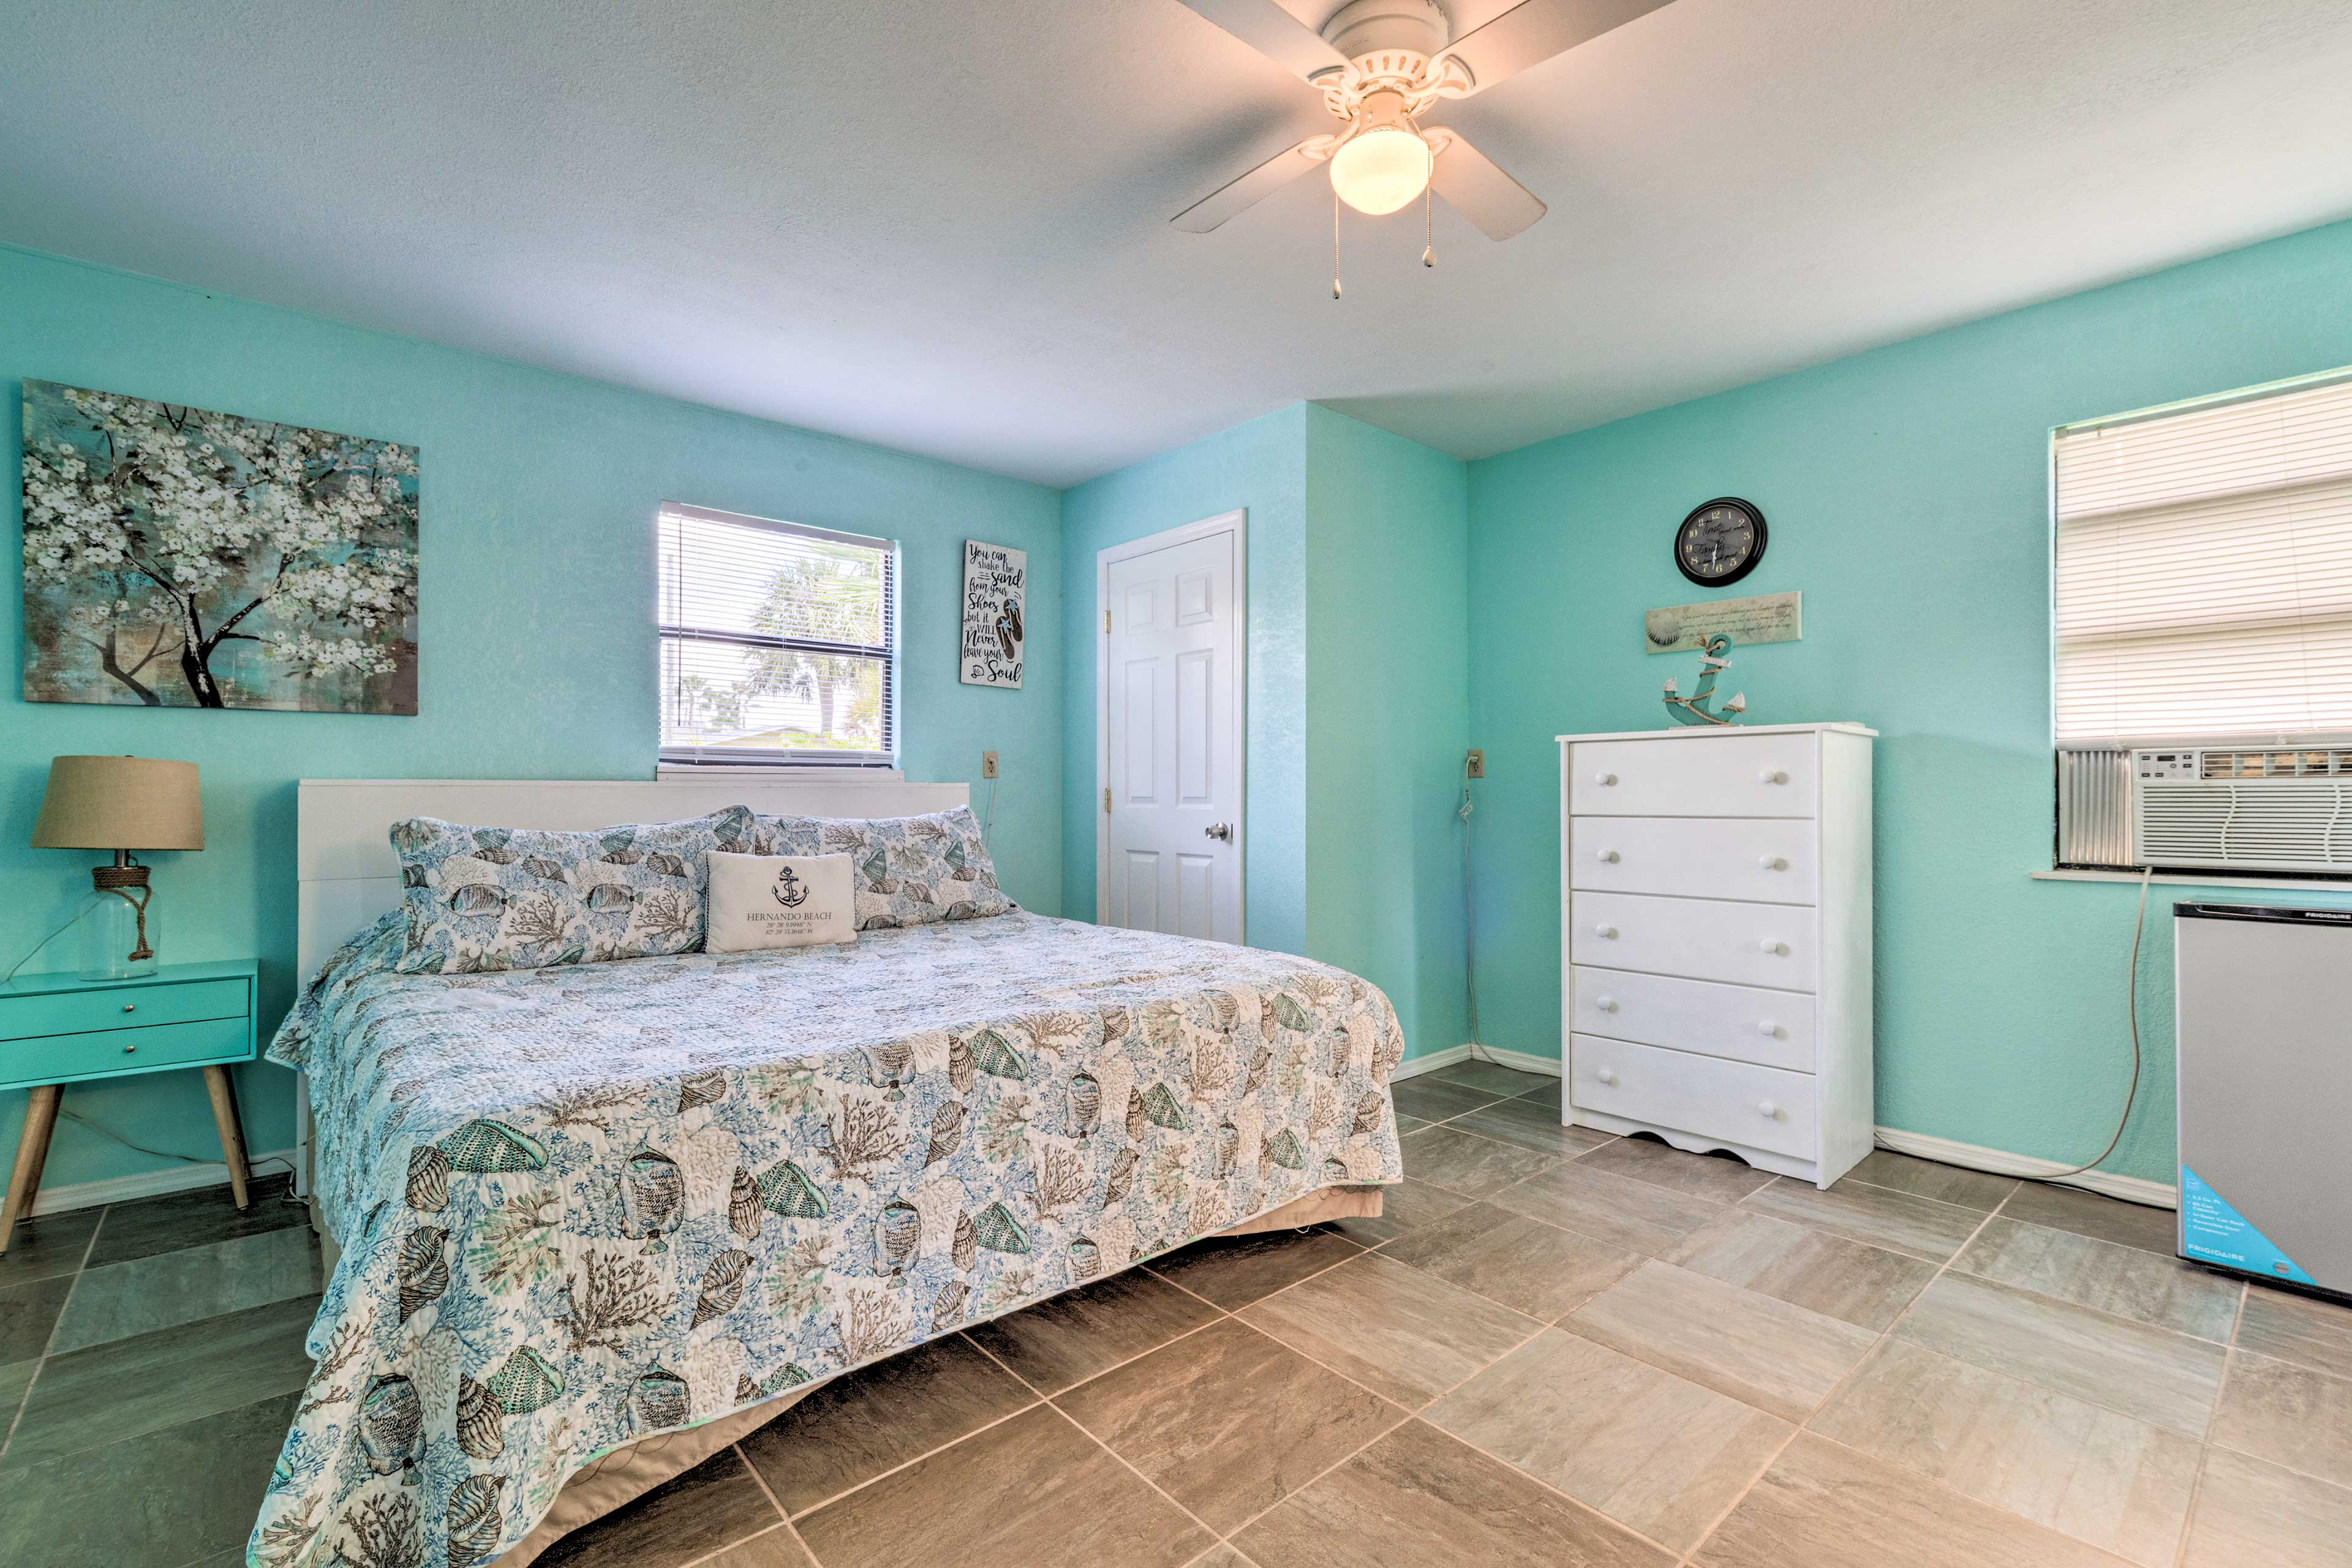 The master bedroom boasts a cozy king bed.